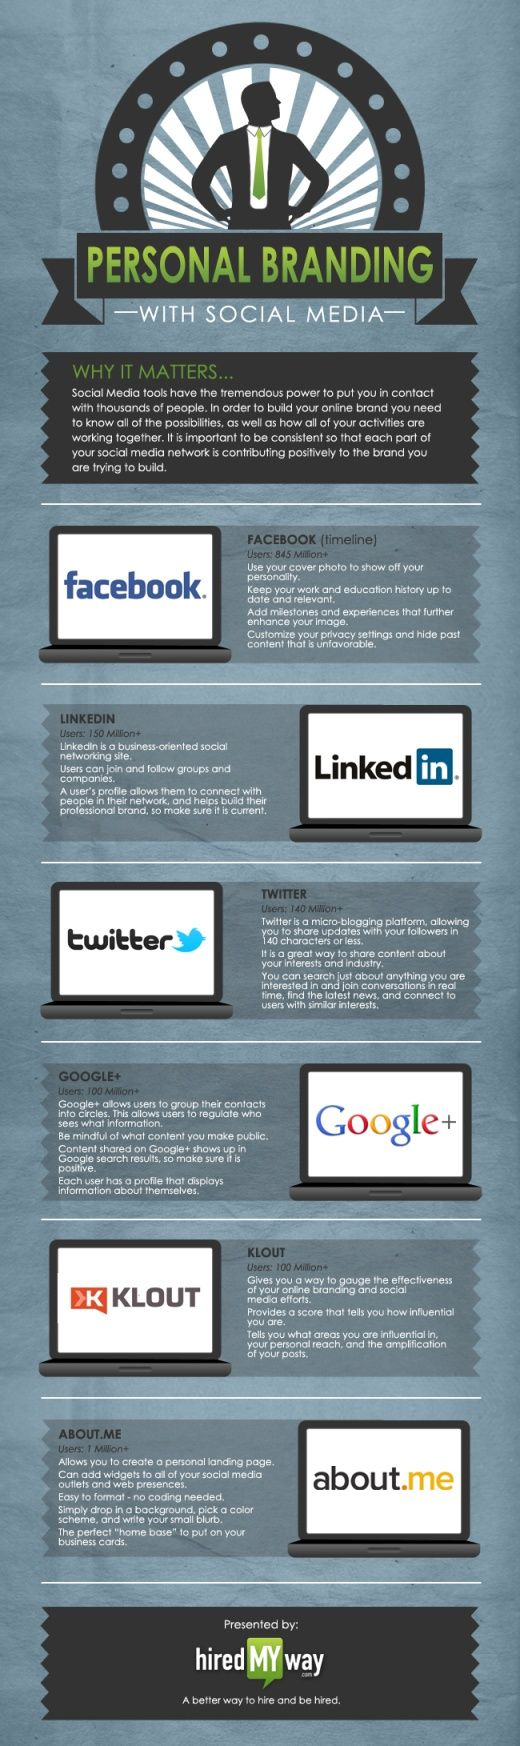 Personal Branding with Social Media #Infographic